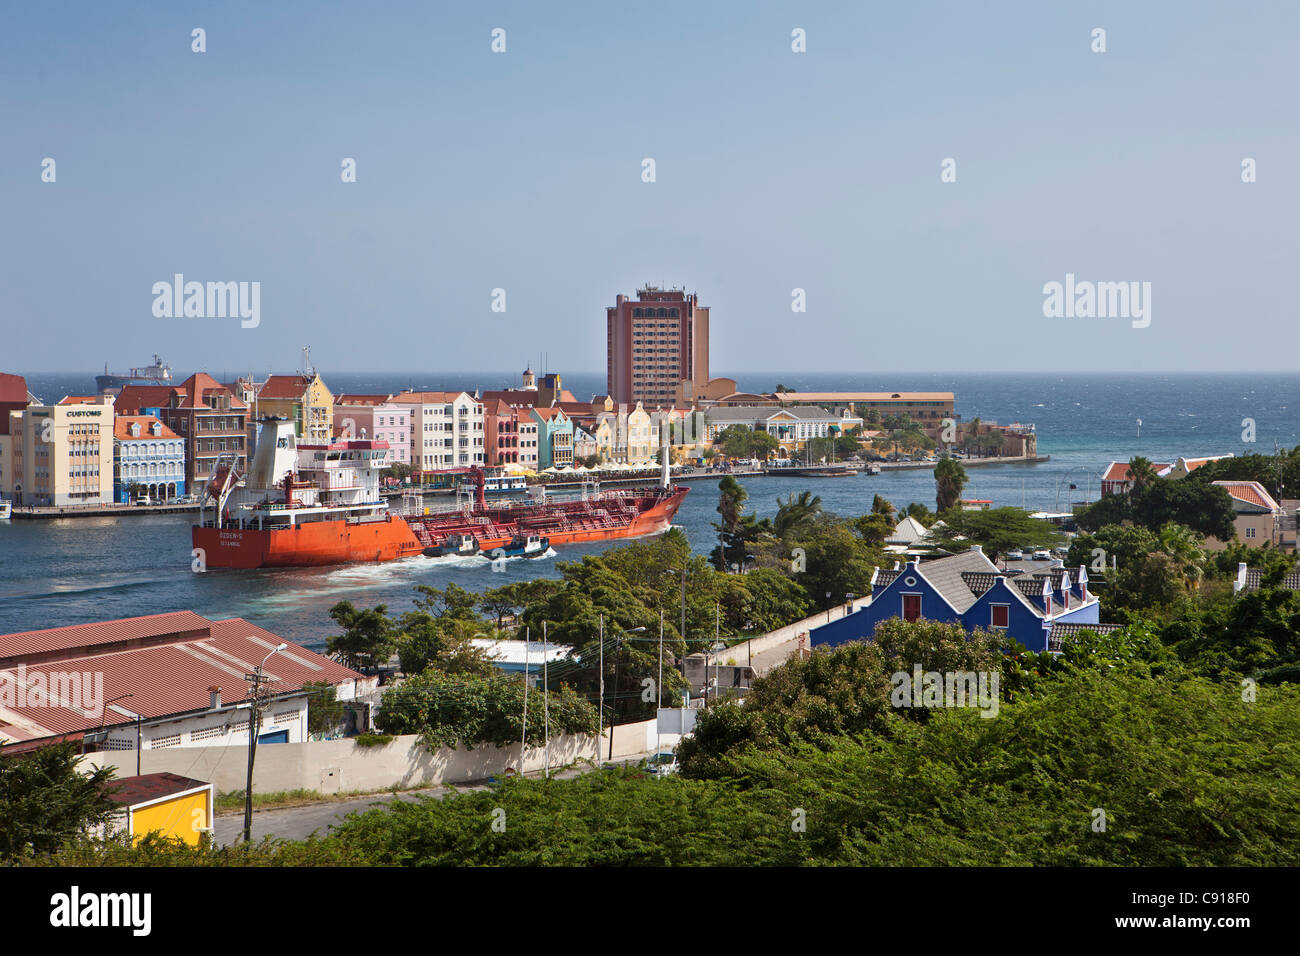 Curacao, Caribbean island, Willemstad. Historic houses on waterfront. Dusk. Chemical products tanker passing Sint - Stock Image